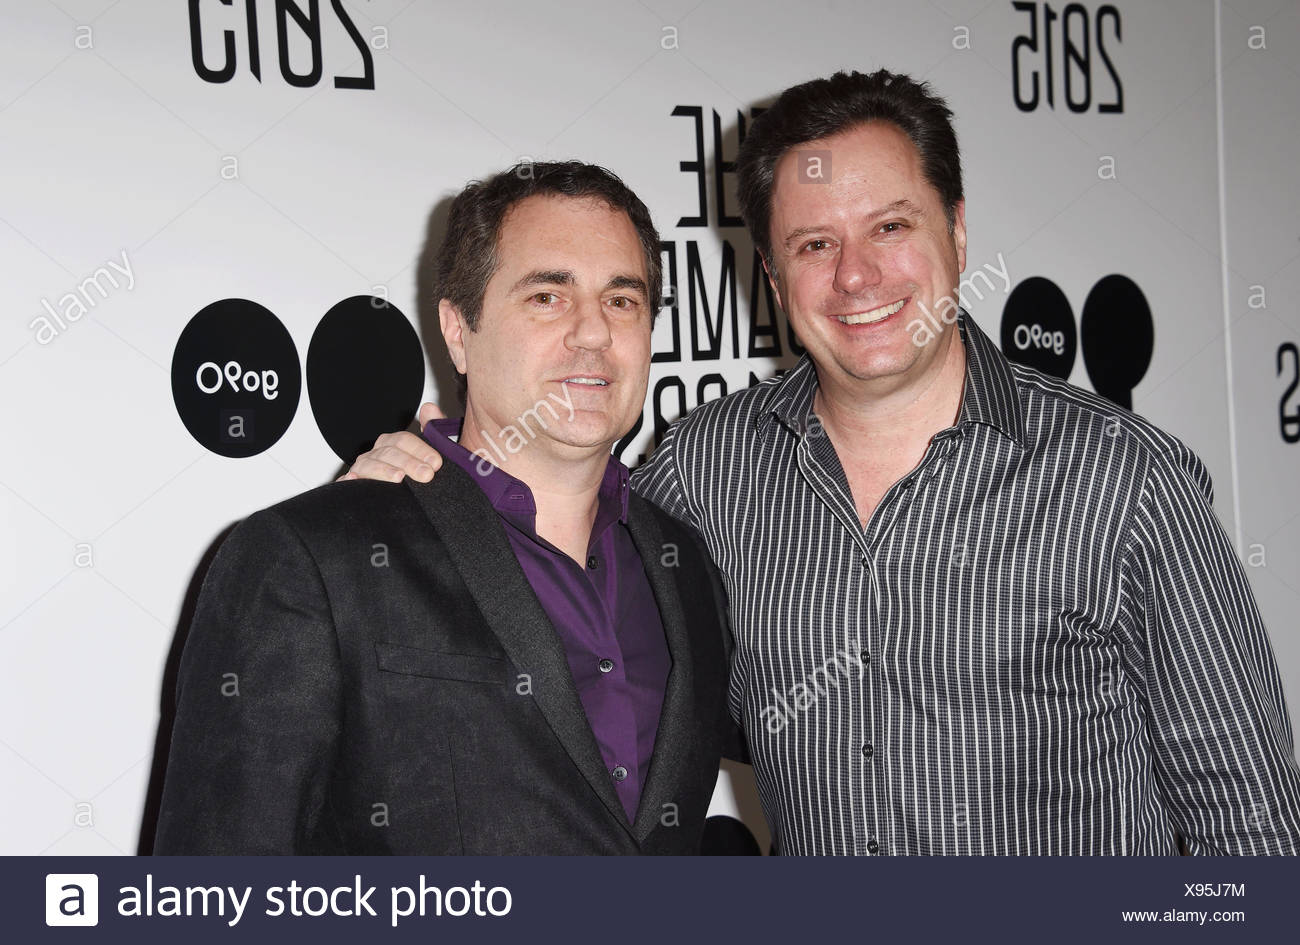 Video game designers and co-founders of Westwood Studios Brett Sperry (L) and Louis Castle arrive at The Game Awards 2015 / Arrivals at Microsoft Theater on December 3, 2015 in Los Angeles, California., Additional-Rights-Clearances-NA - Stock Image